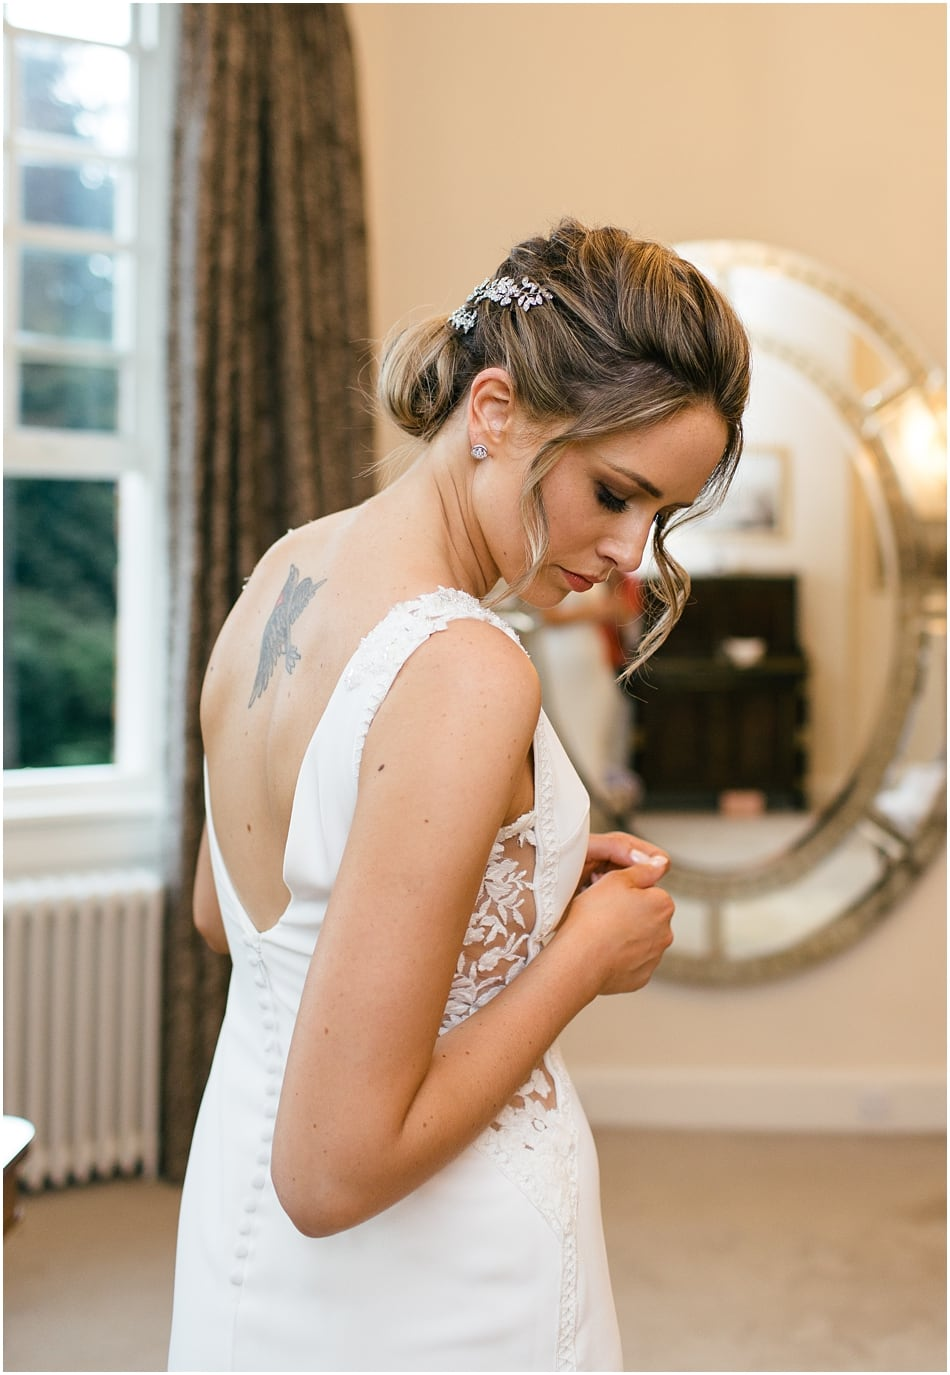 Pronovias fitted wedding dress with lace panel for an Iscoyd Park wedding